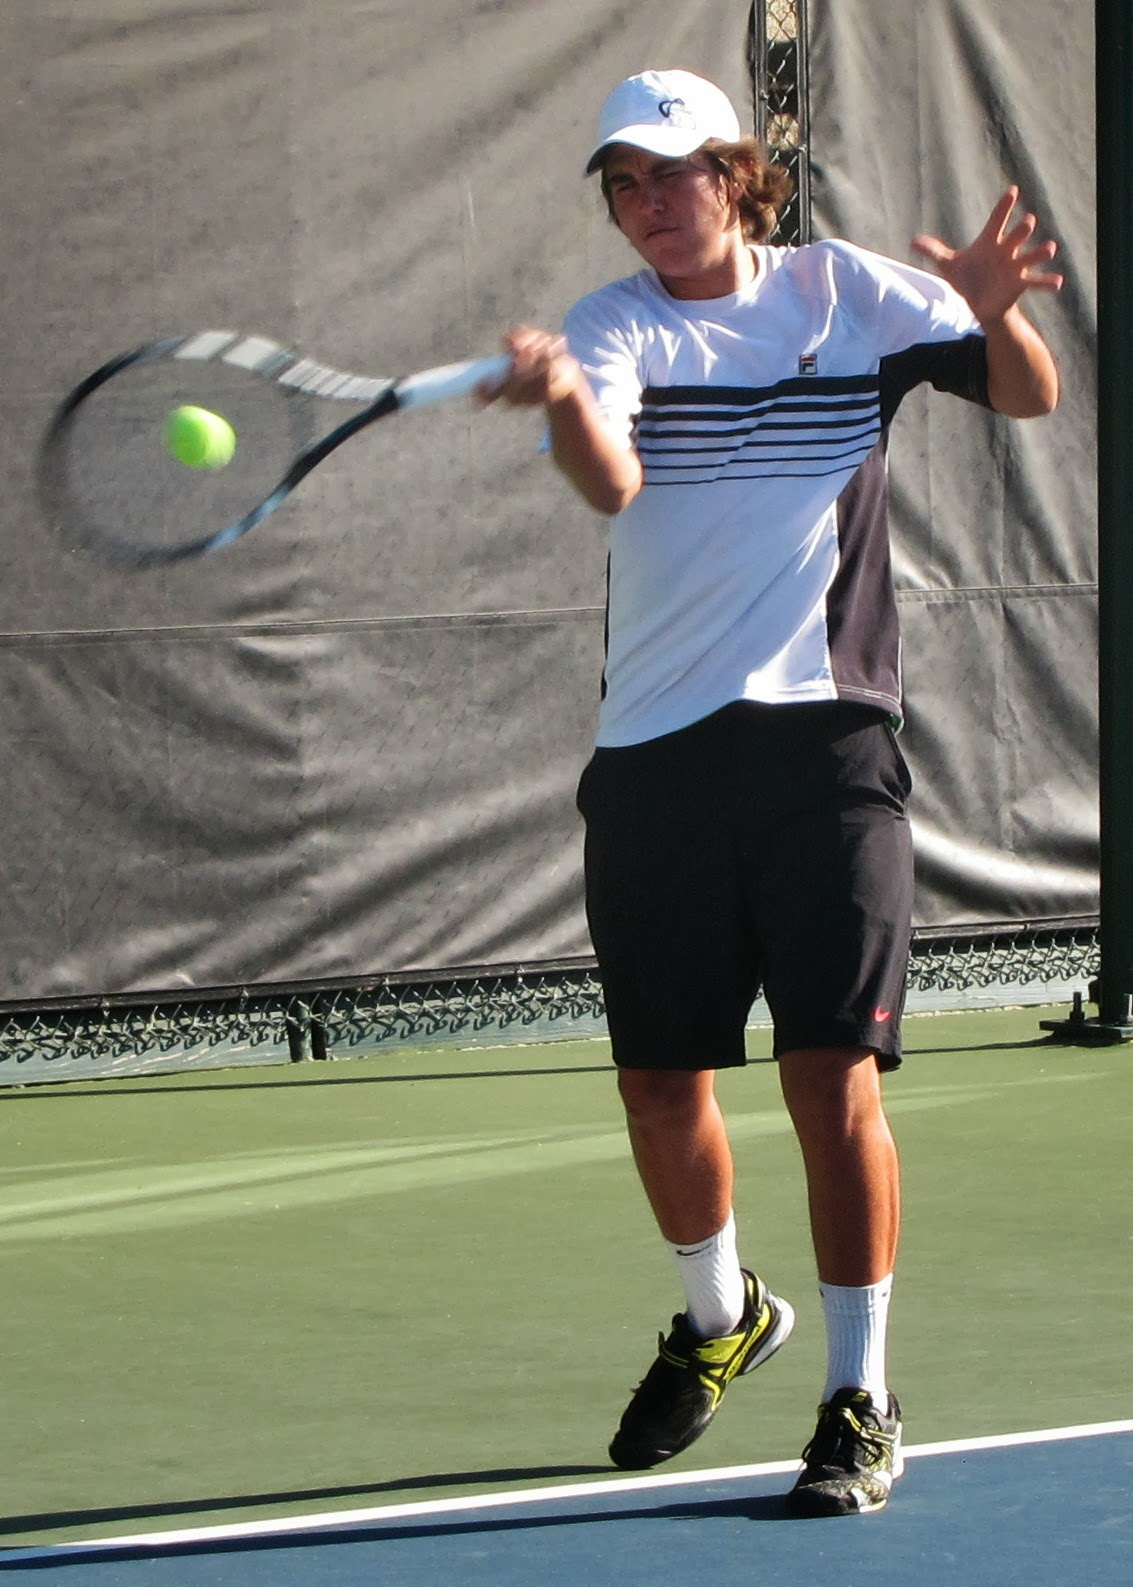 Altamirano loses in final of Boys 18 Nationals